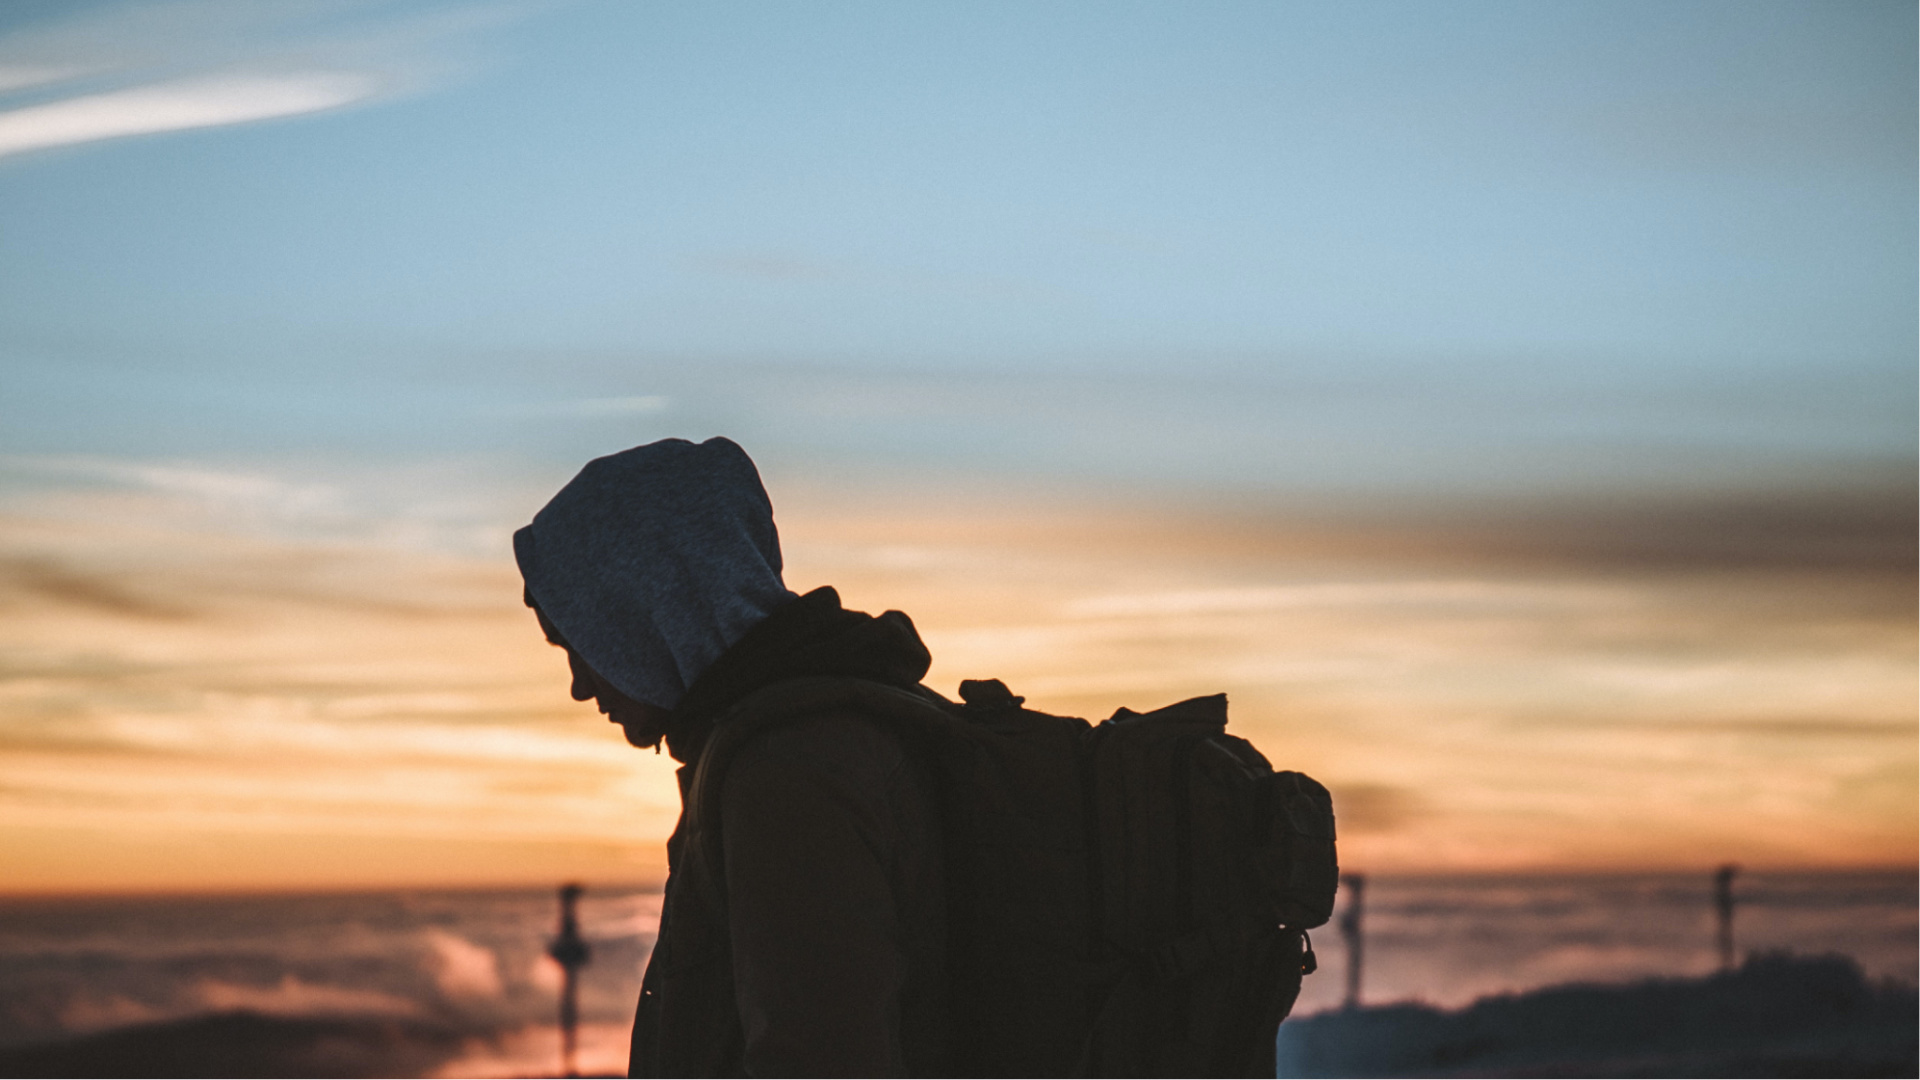 Silhouette of a man with backpack during sunset